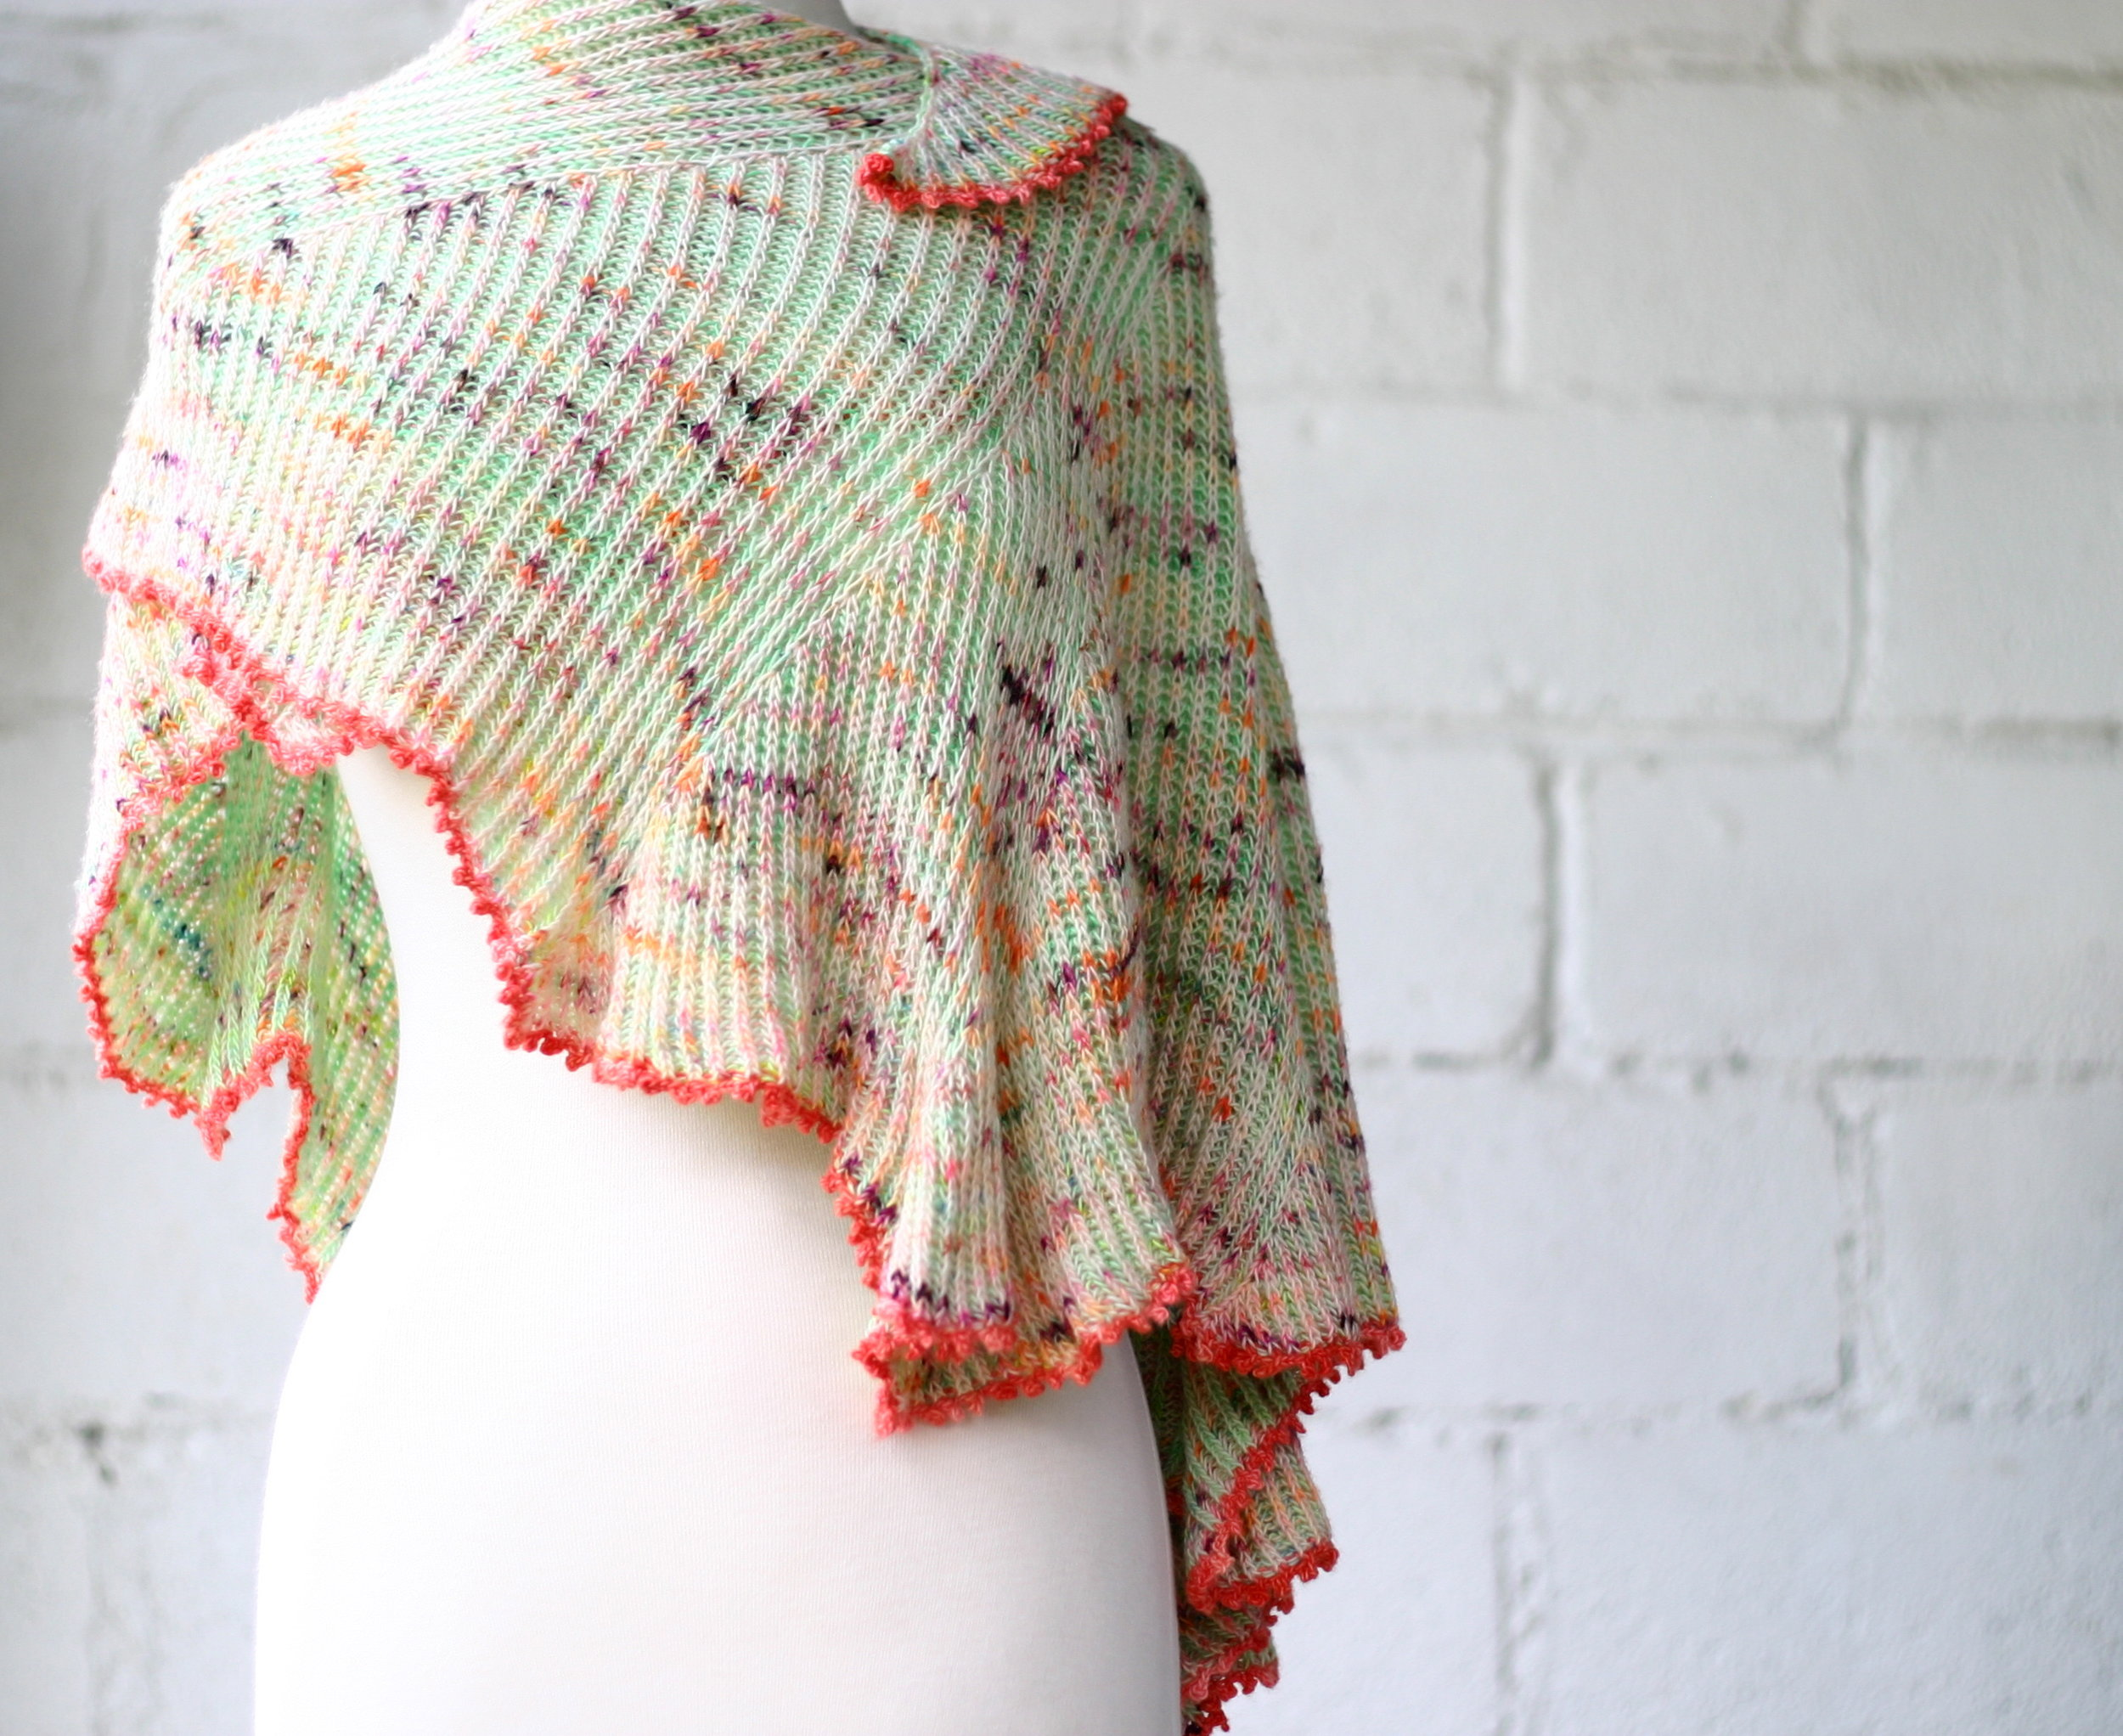 Just uploaded my  Sprouting Brioche Shawl pattern to Ravelry.com . I'll be hosting a few classes on this project in the fall so keep your eyes out for upcoming dates!